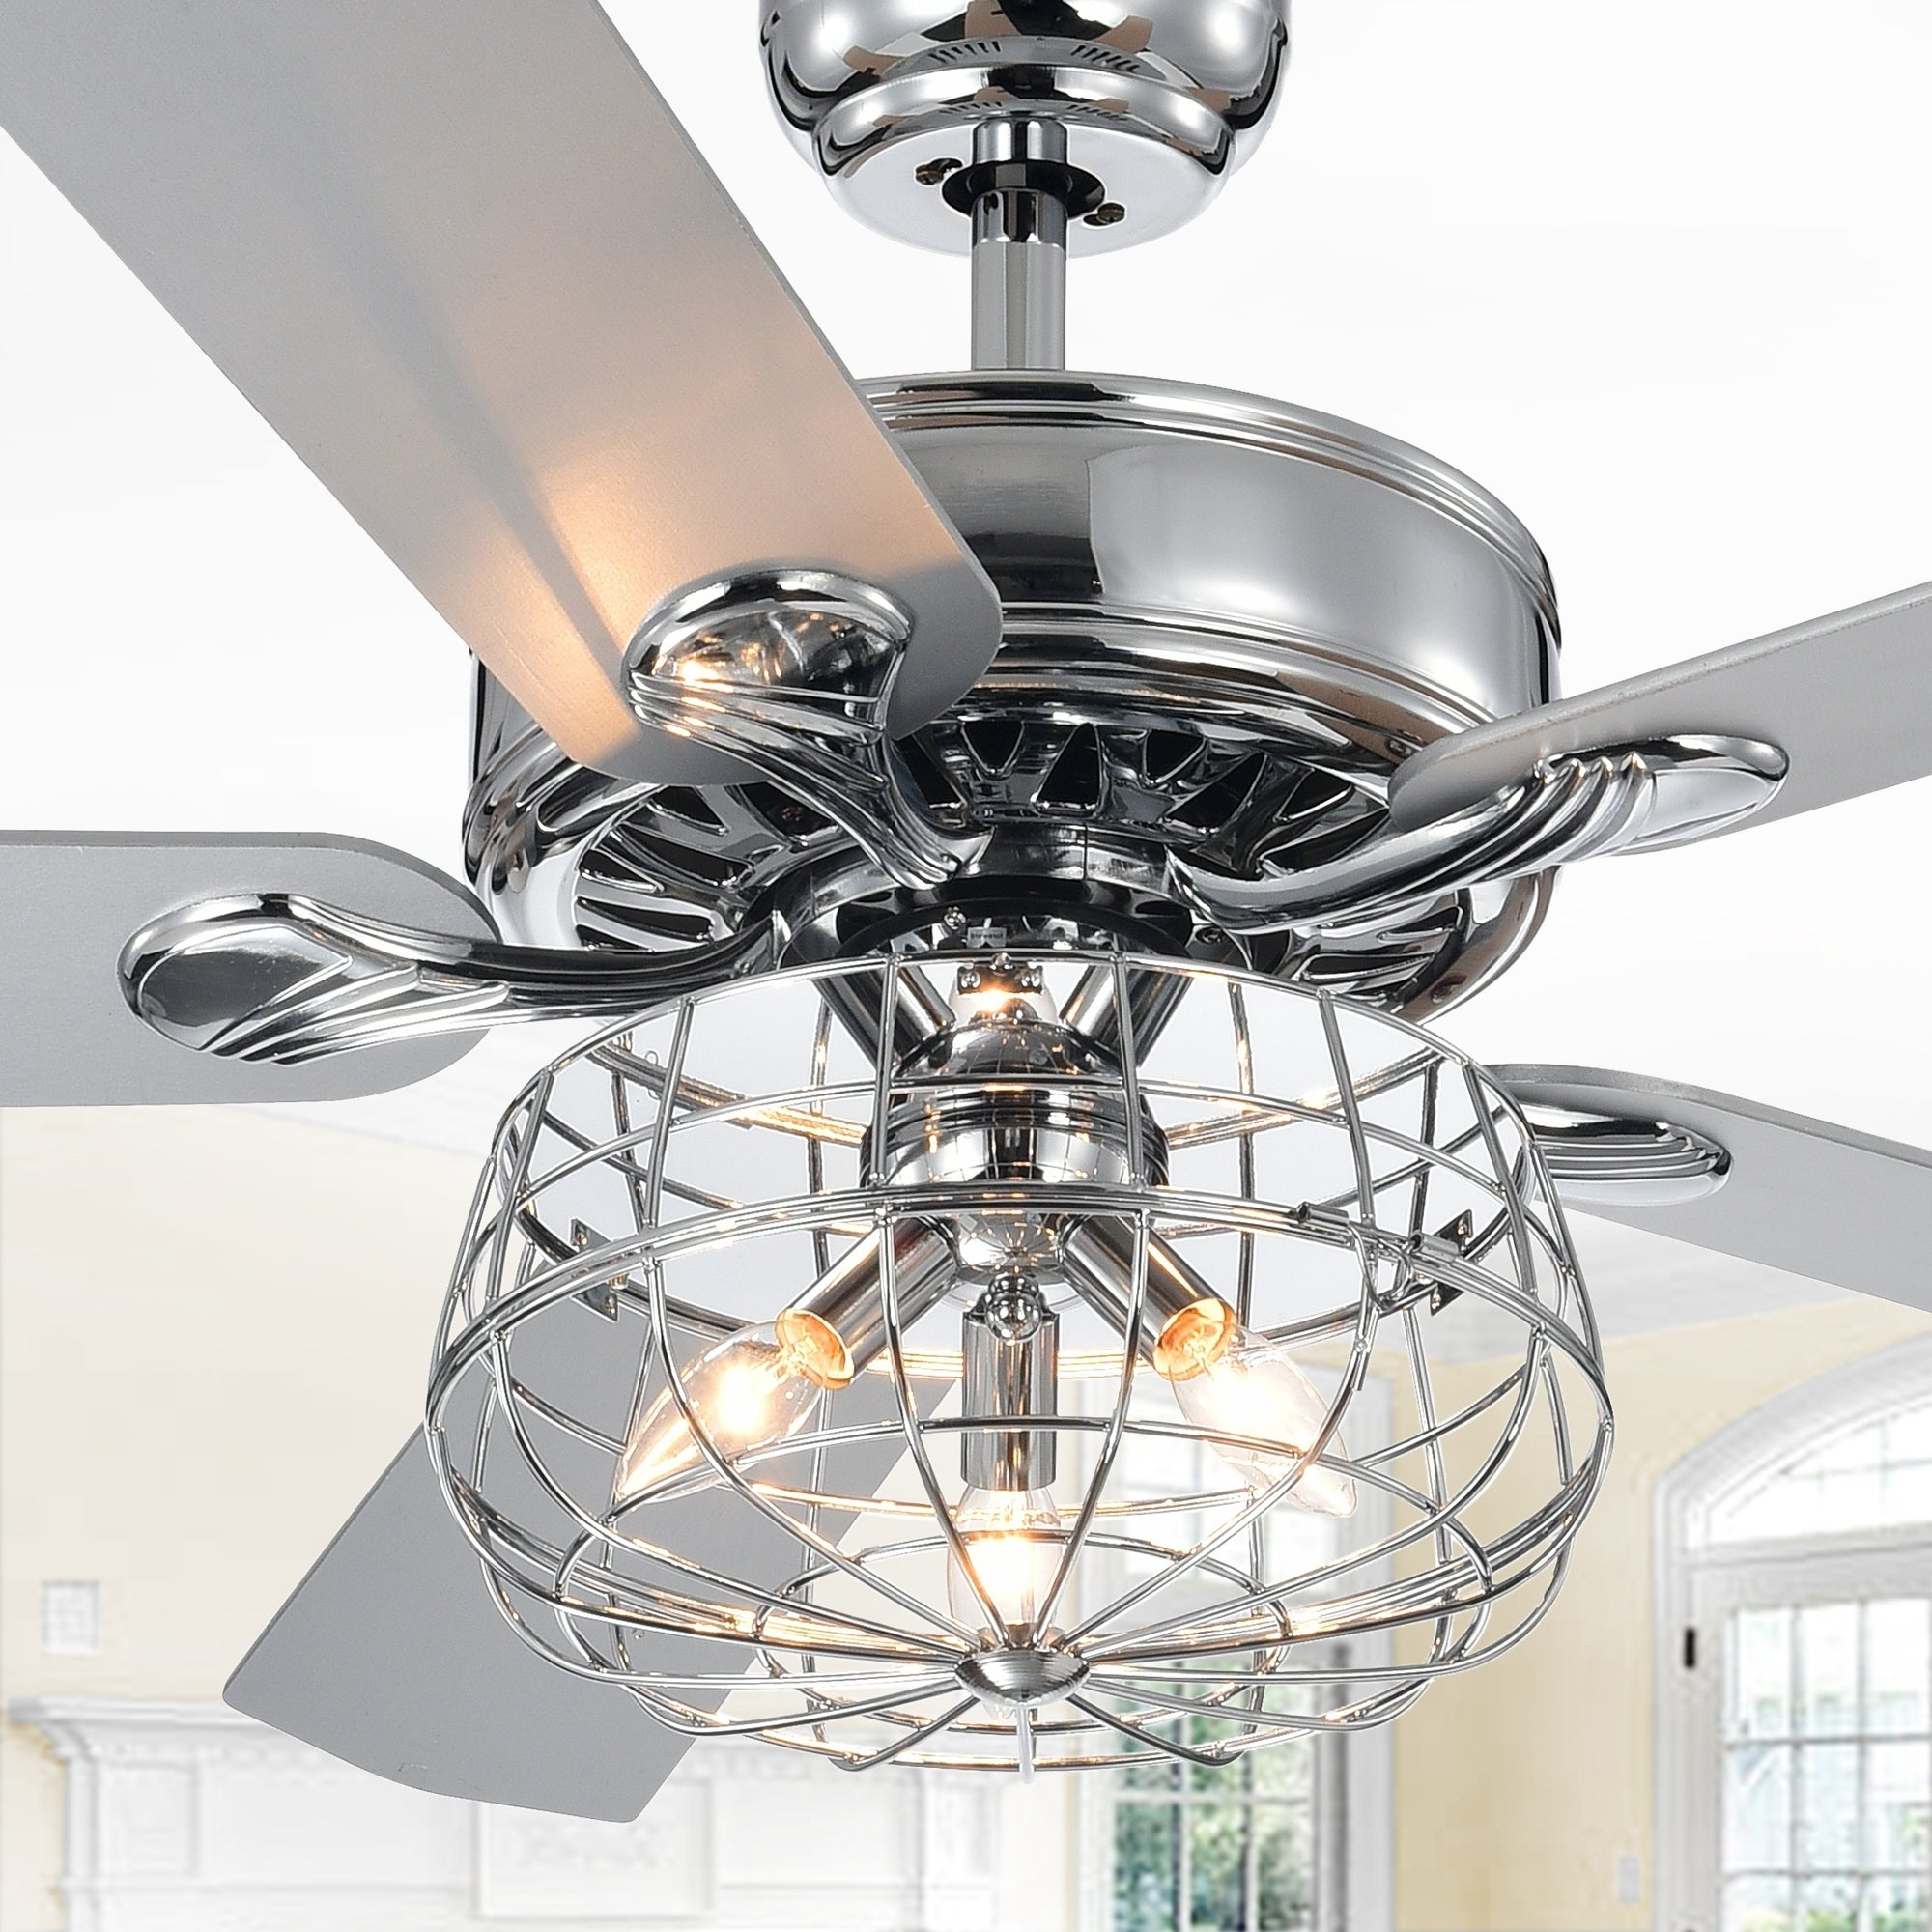 Clybourn 5 Blade Ceiling Fans Pertaining To Recent Imberts Chrome 52 Inch 5 Blade Lighted Ceiling Fan With Cage Chandelier  (Includes Remote And 2 Blade Color Options) (View 7 of 20)